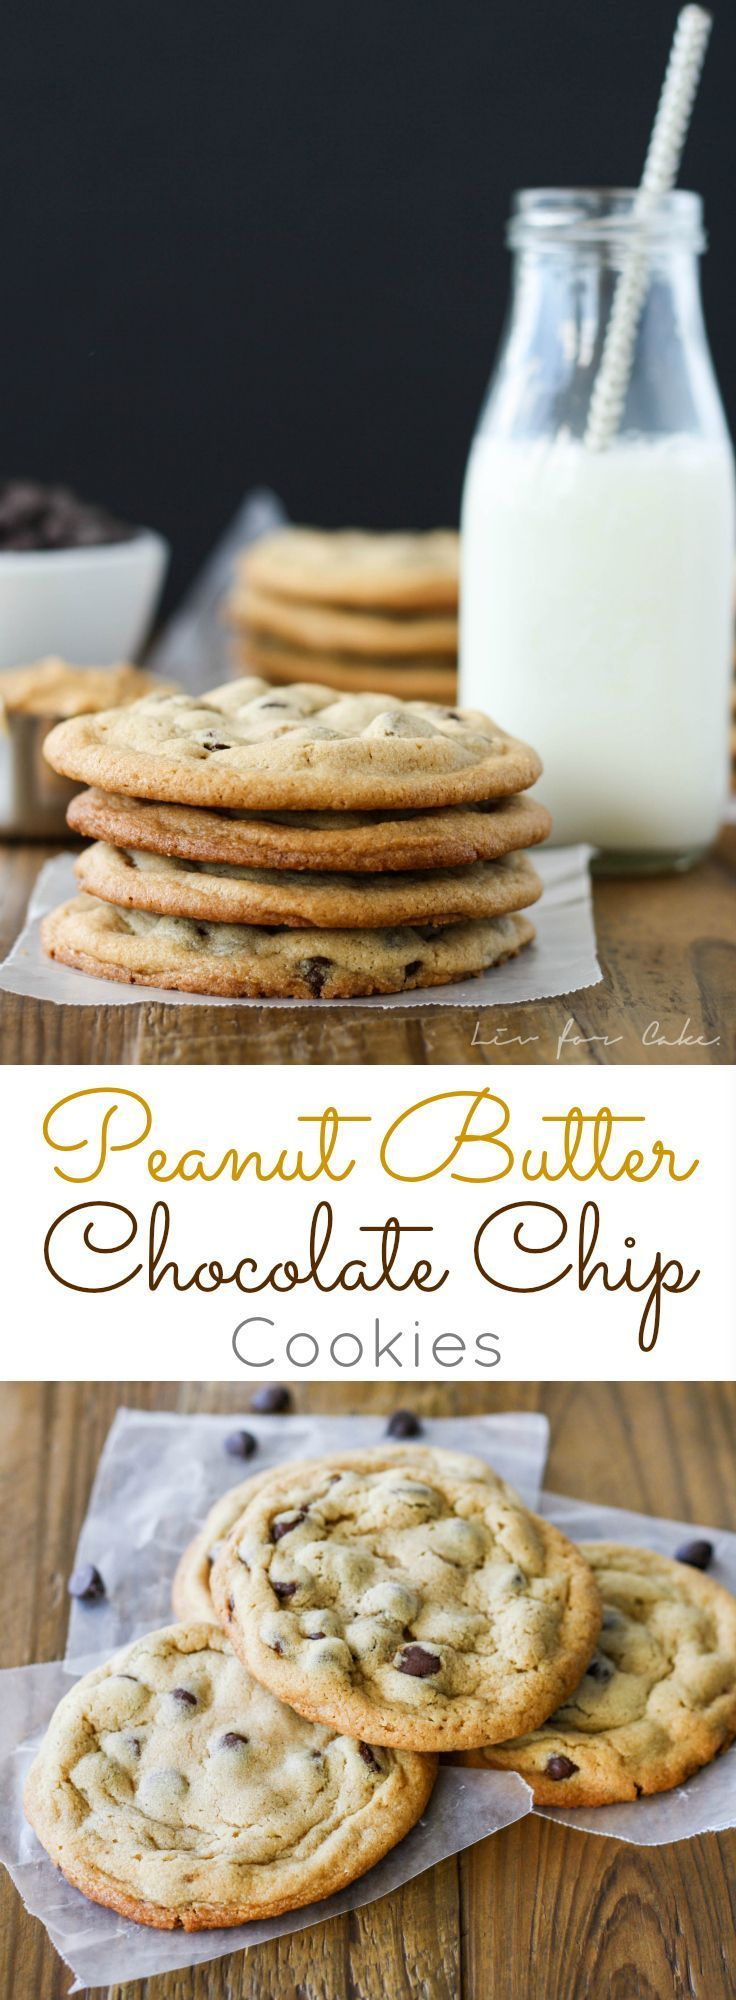 The ultimate chewy peanut butter chocolate chip cookie. Sweet, peanutty, and delicious.